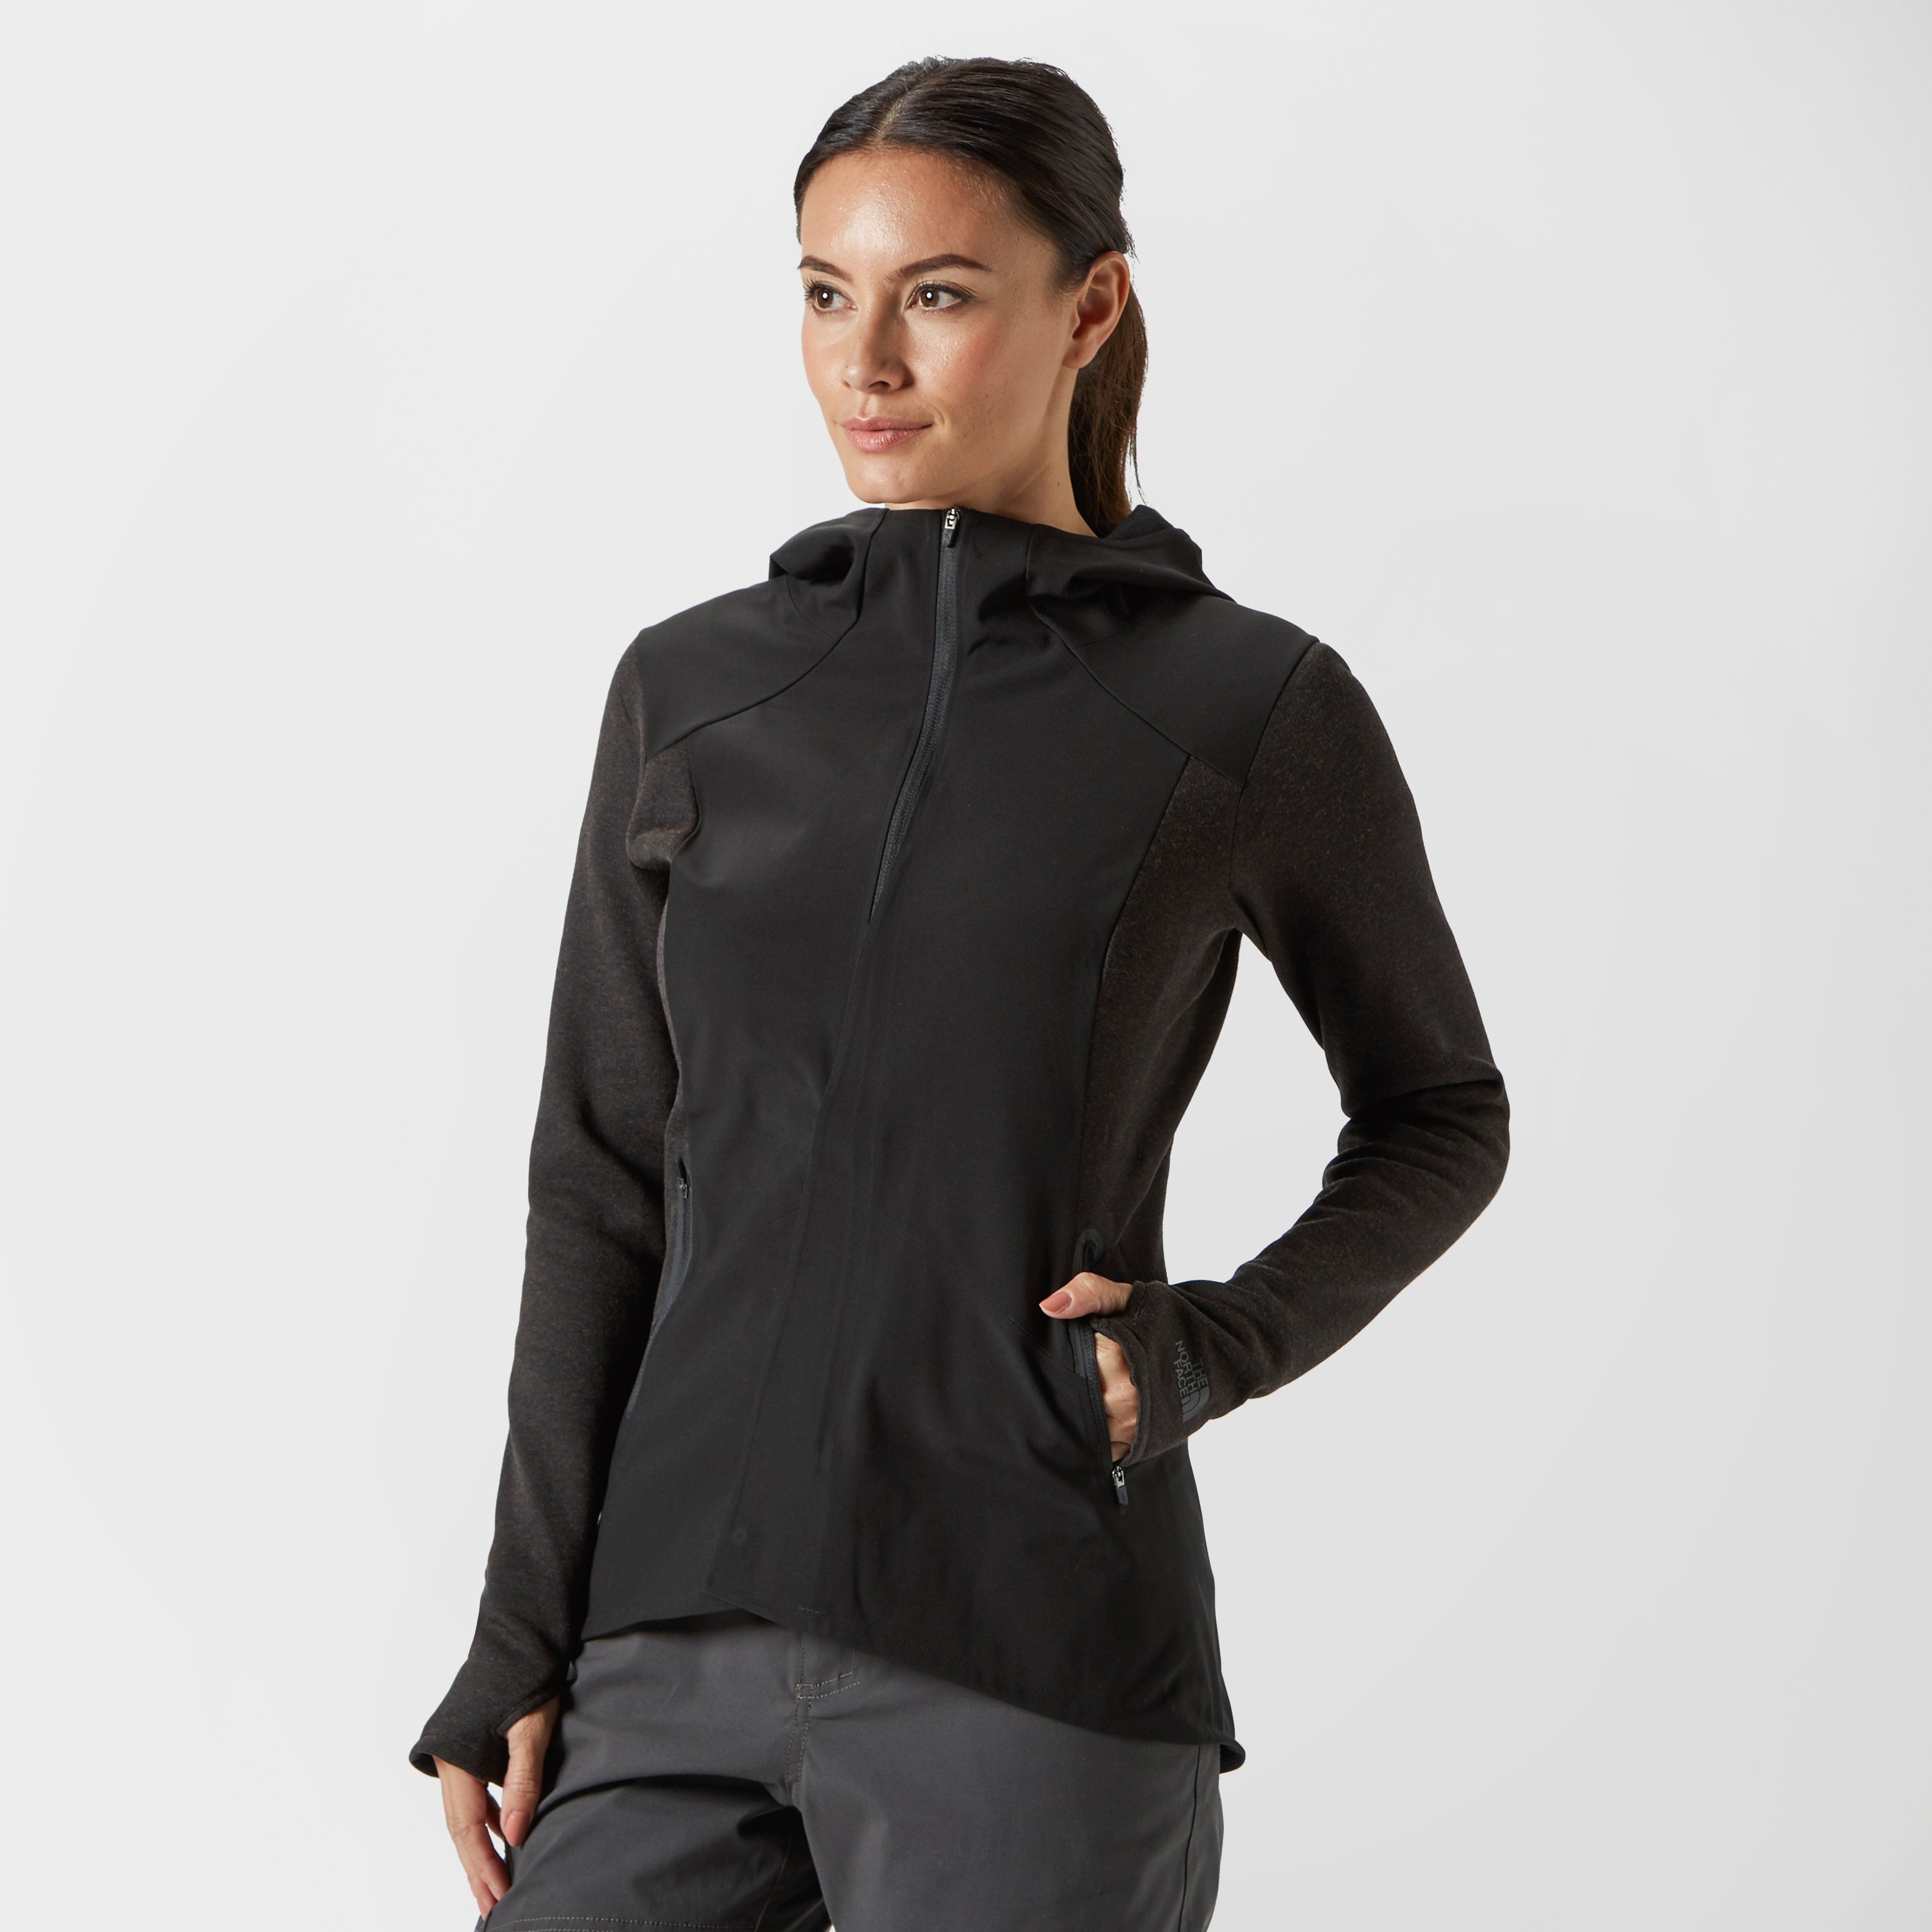 THE NORTH FACE Women's Motivation Jacket